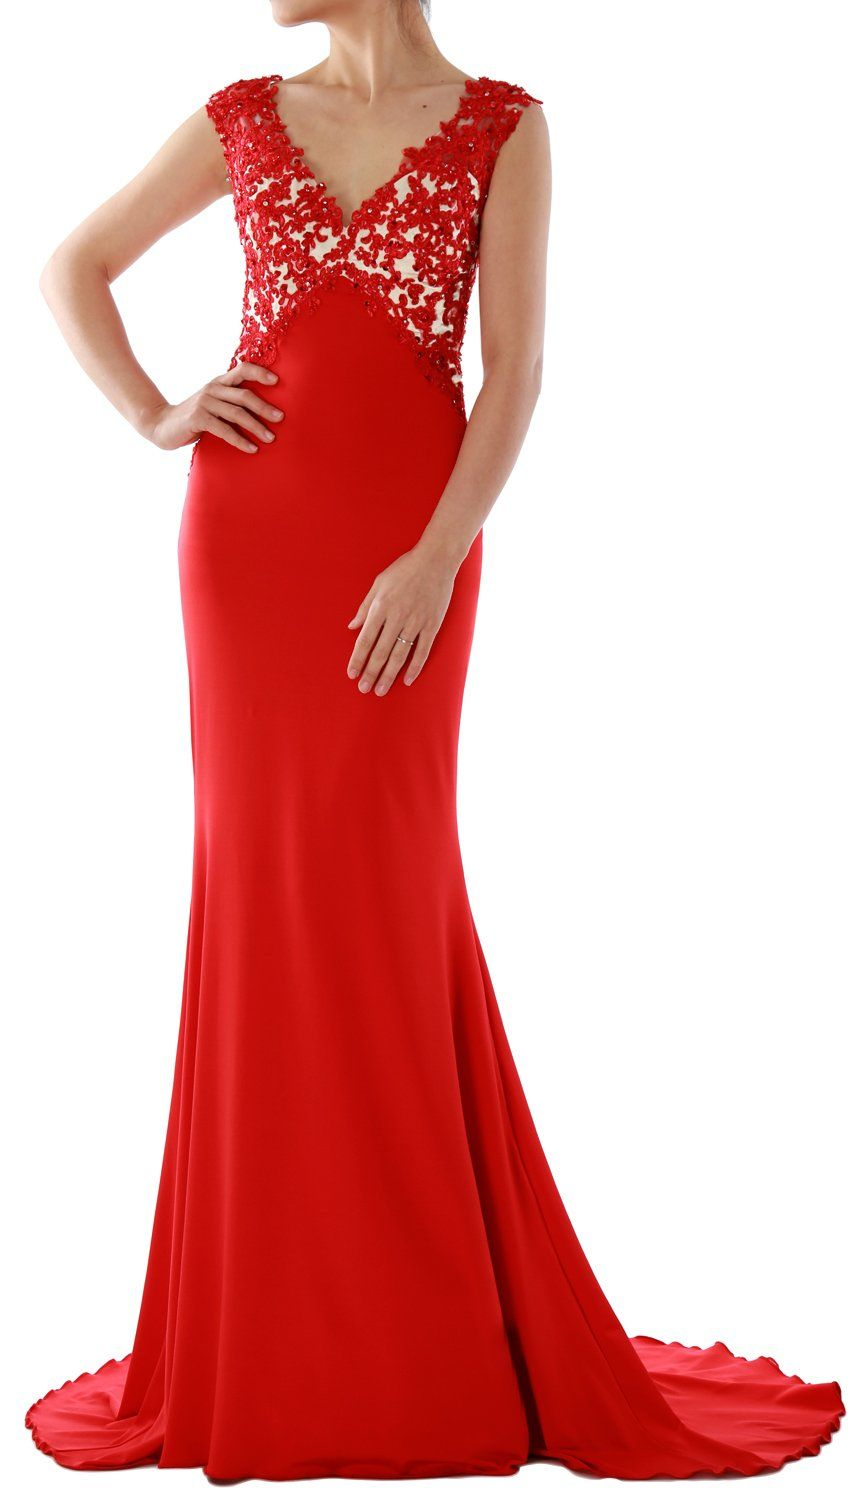 Macloth women mermaid lace jersey long evening dress prom party